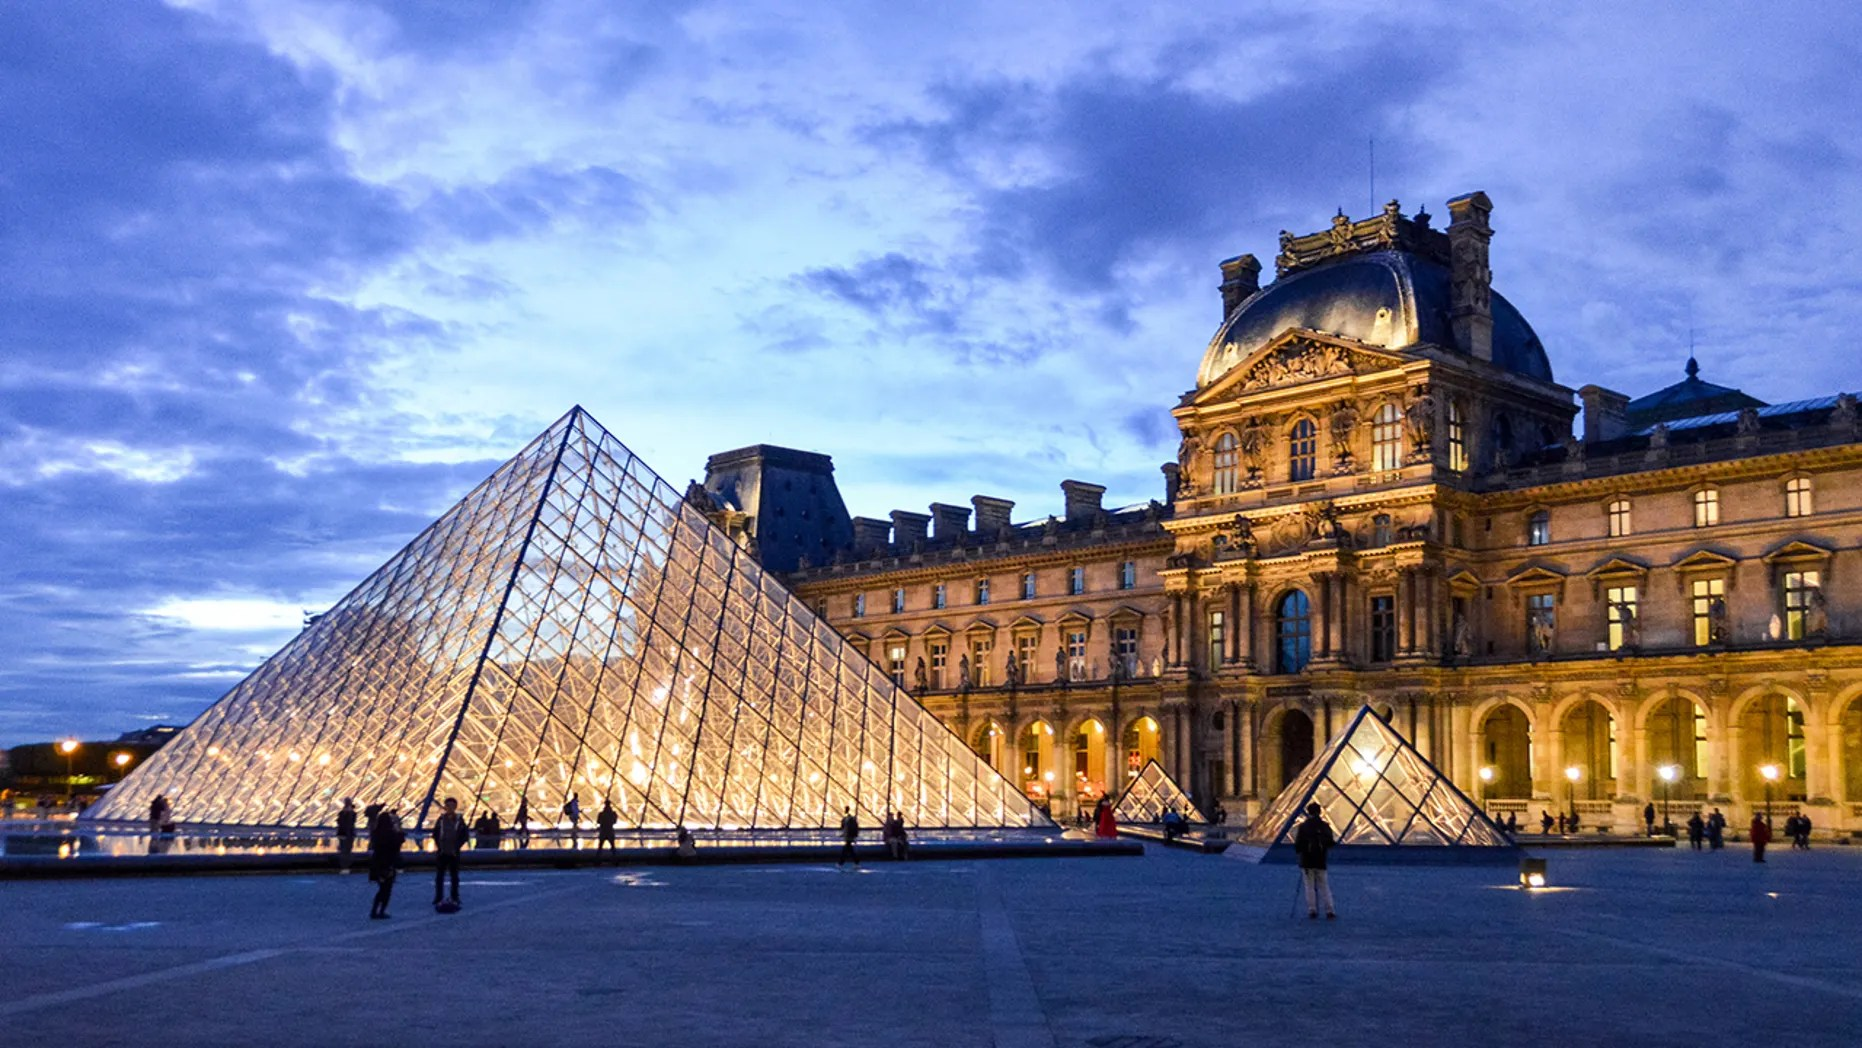 Instagram Influencer Reportedly Booted Louvre